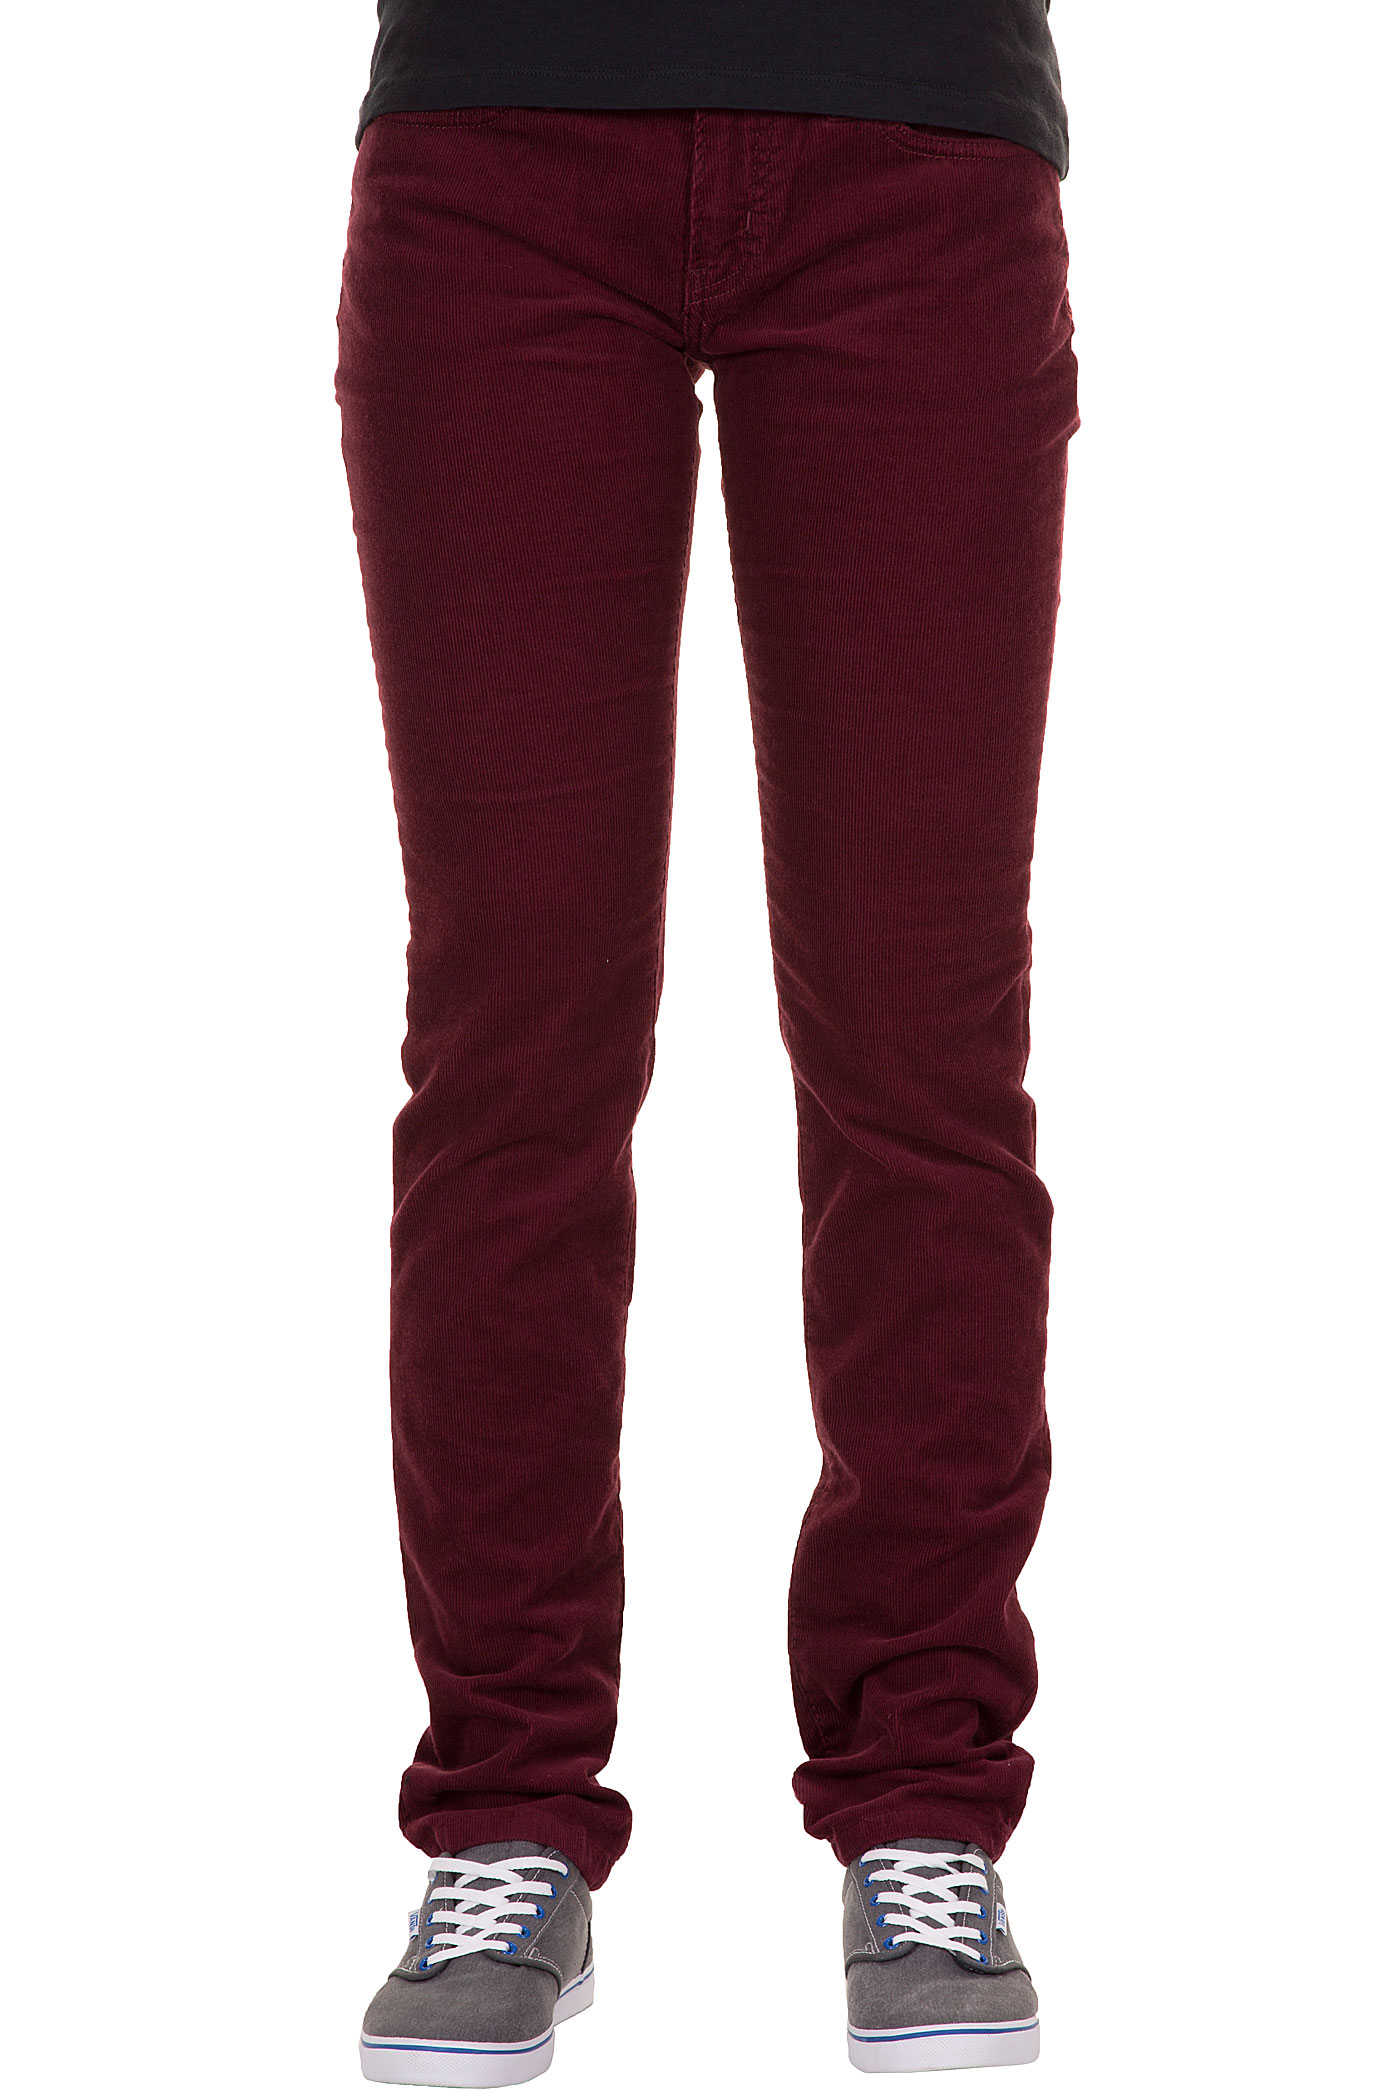 carhartt rebel pant lakewood pants women cranberry rinsed. Black Bedroom Furniture Sets. Home Design Ideas